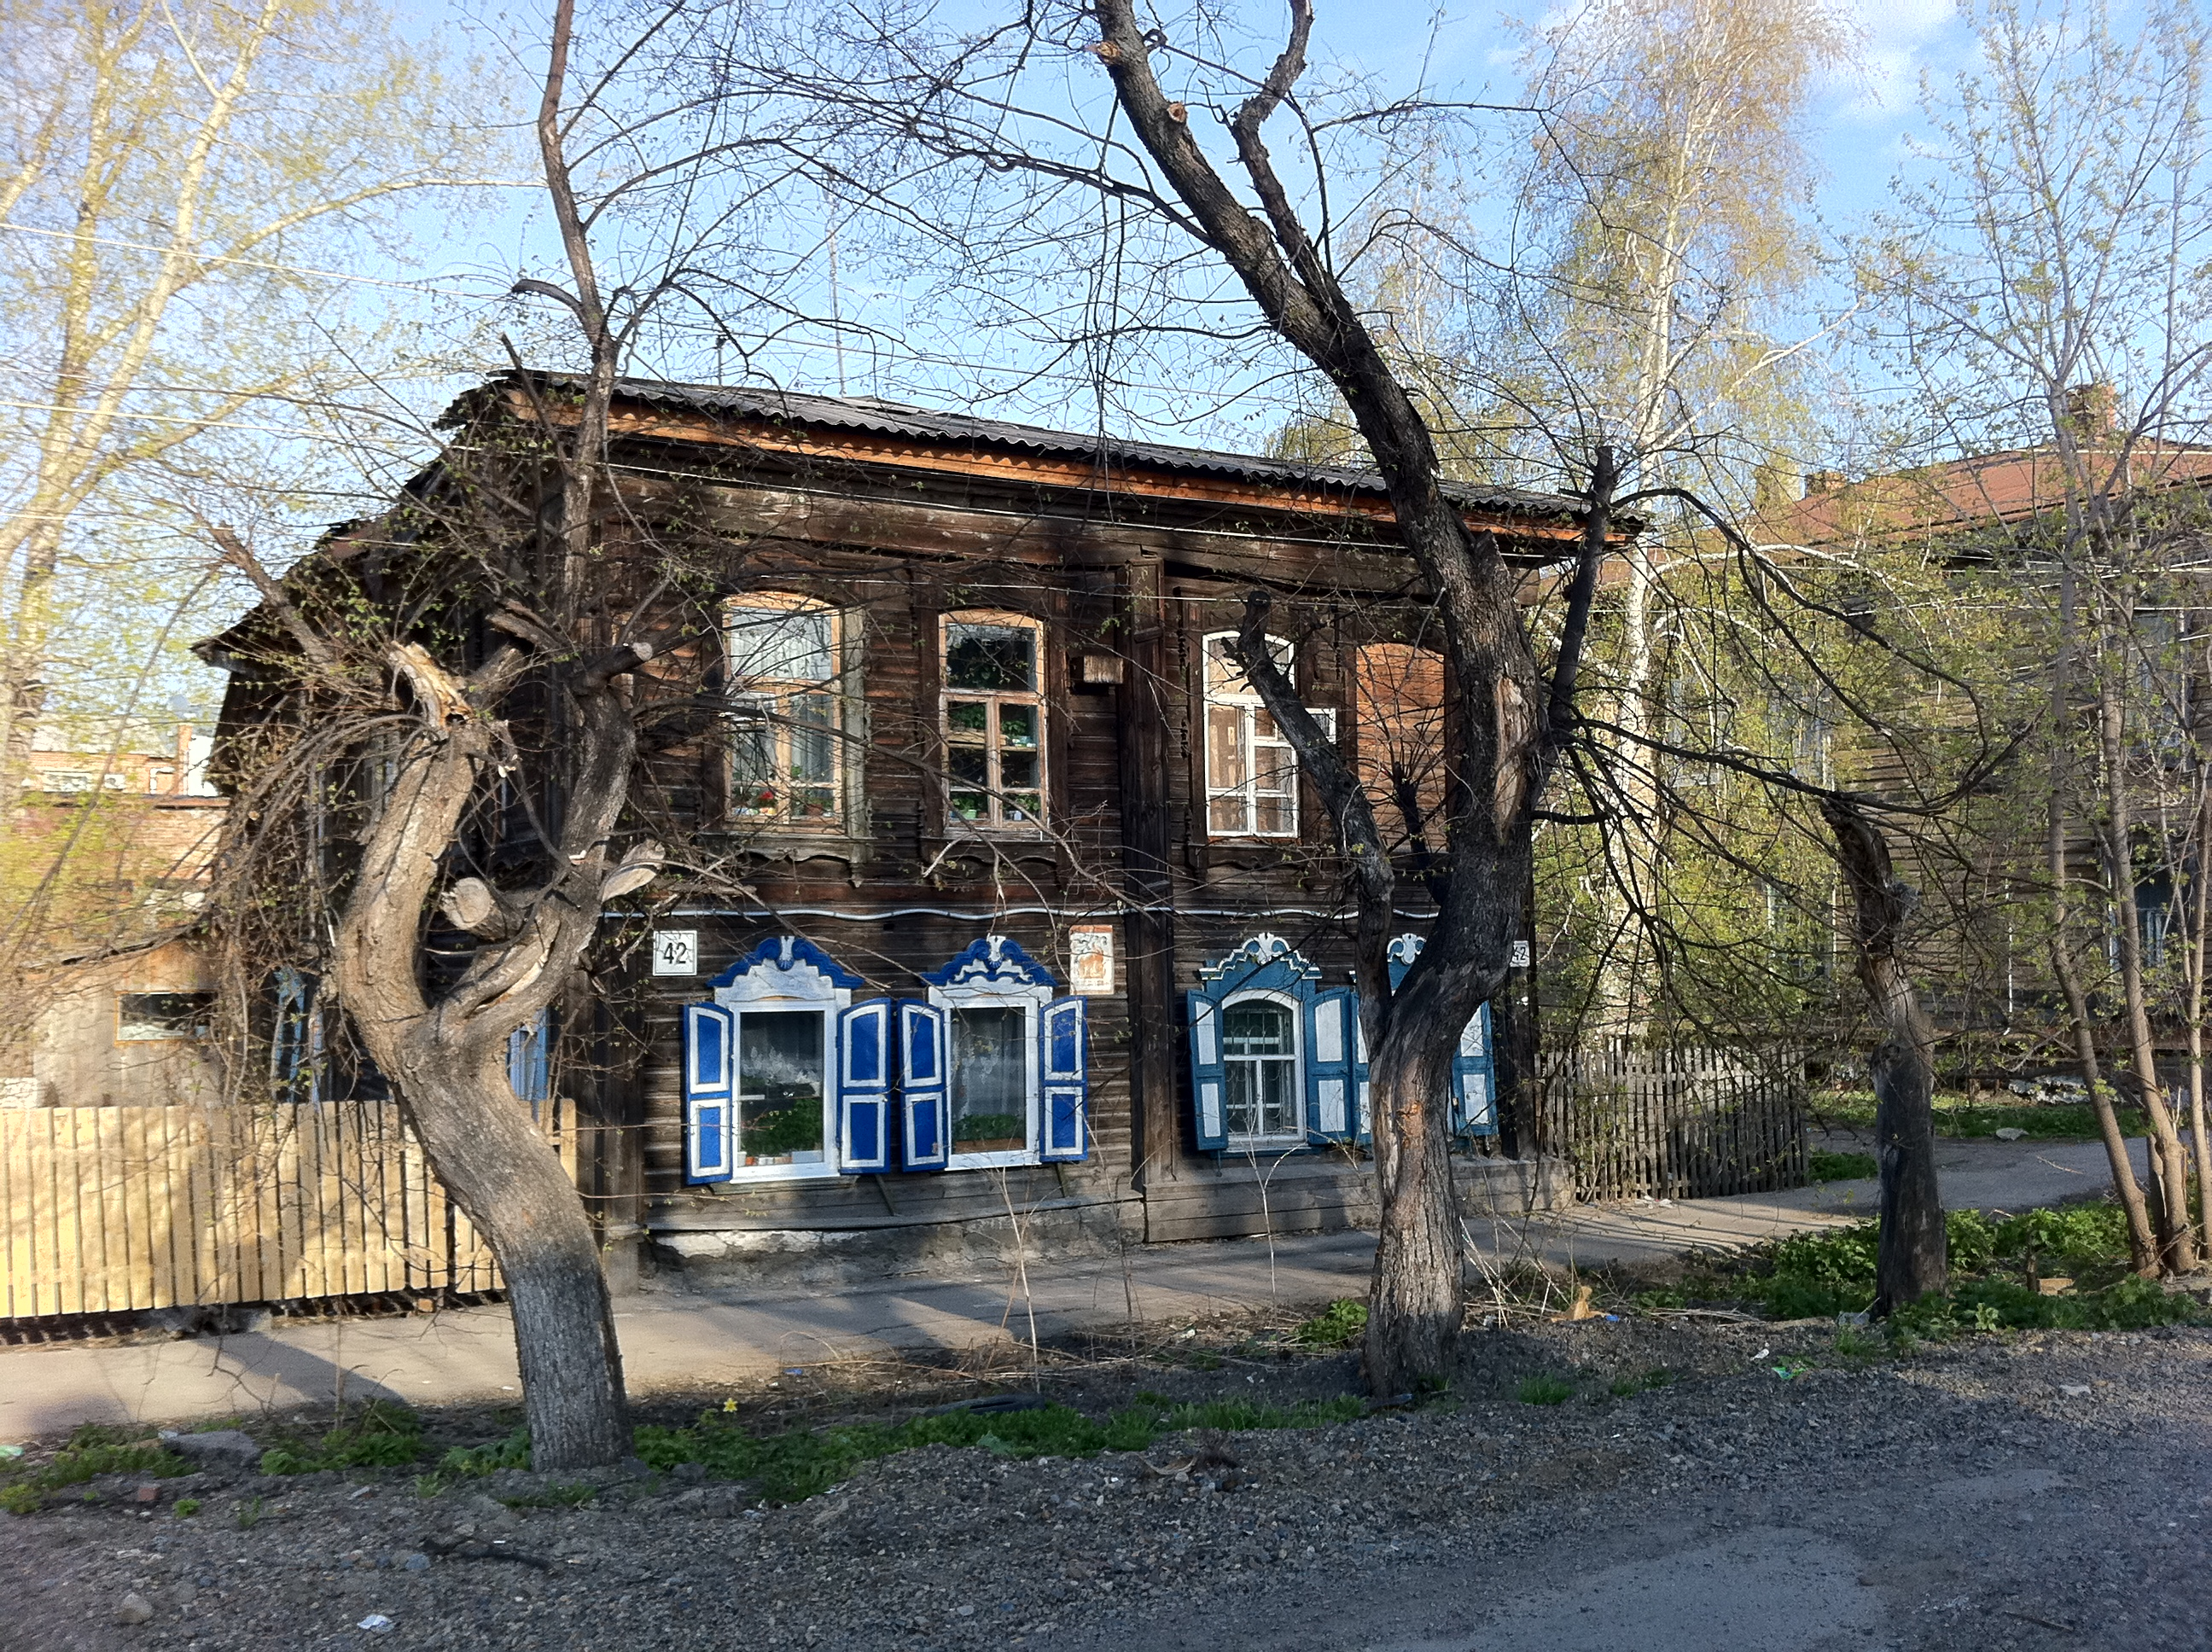 Tomsk Moscow To Beijing On The Trans Siberian Railway